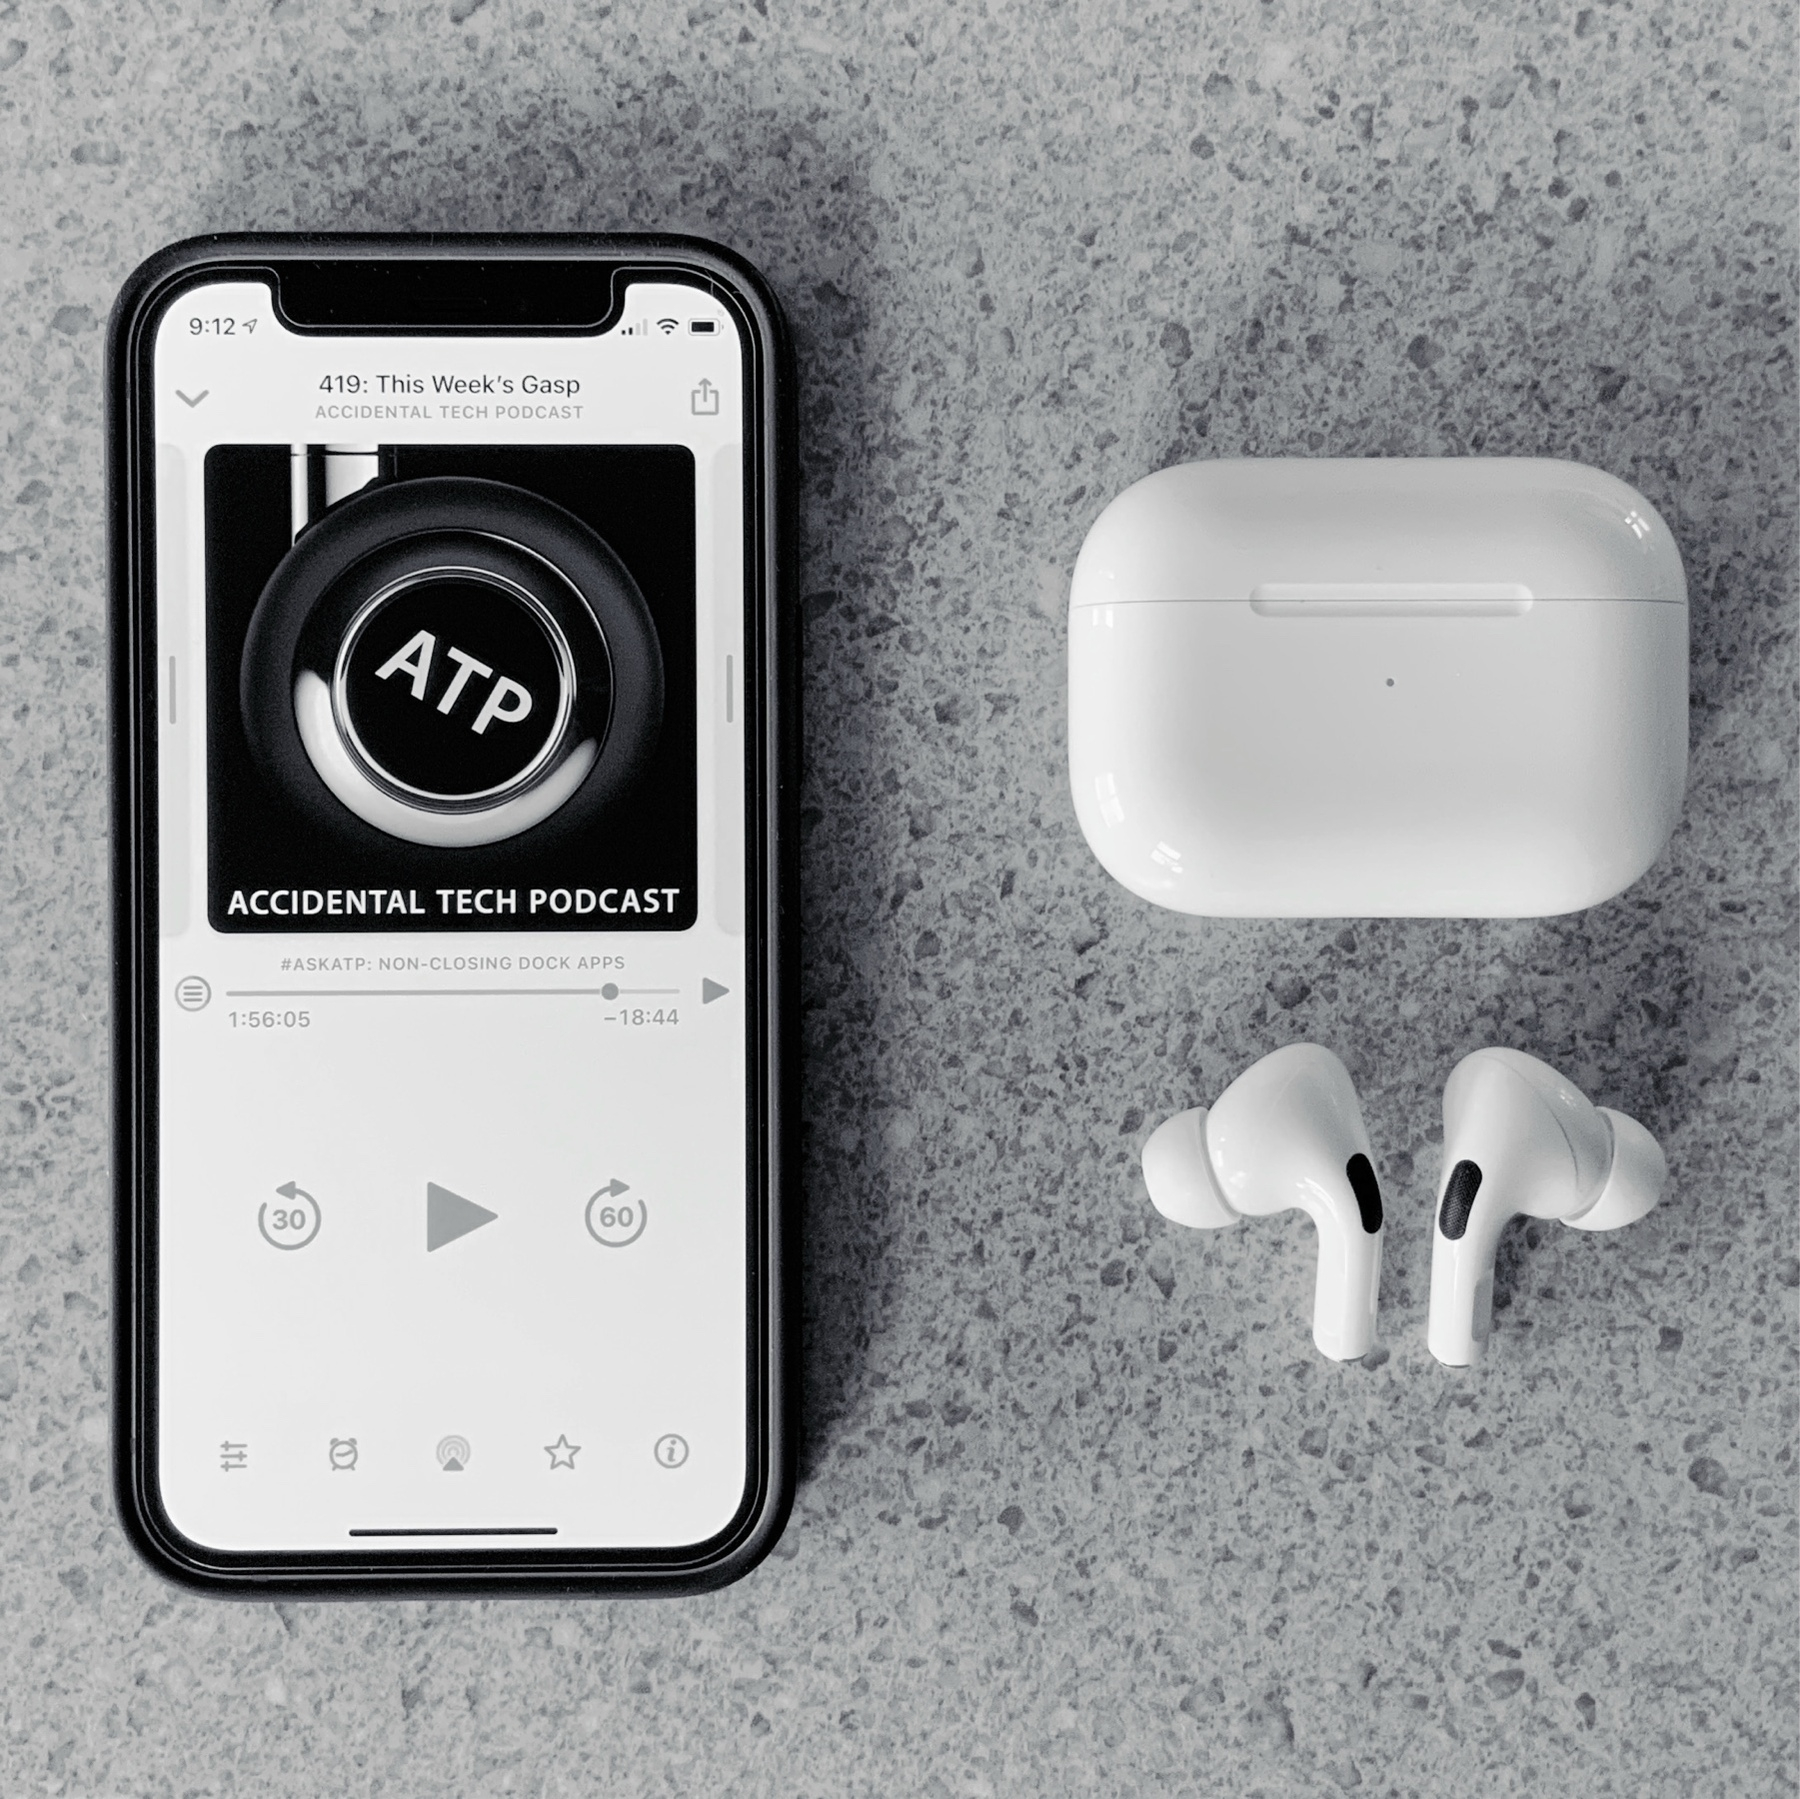 iPhone and AirPods headphones